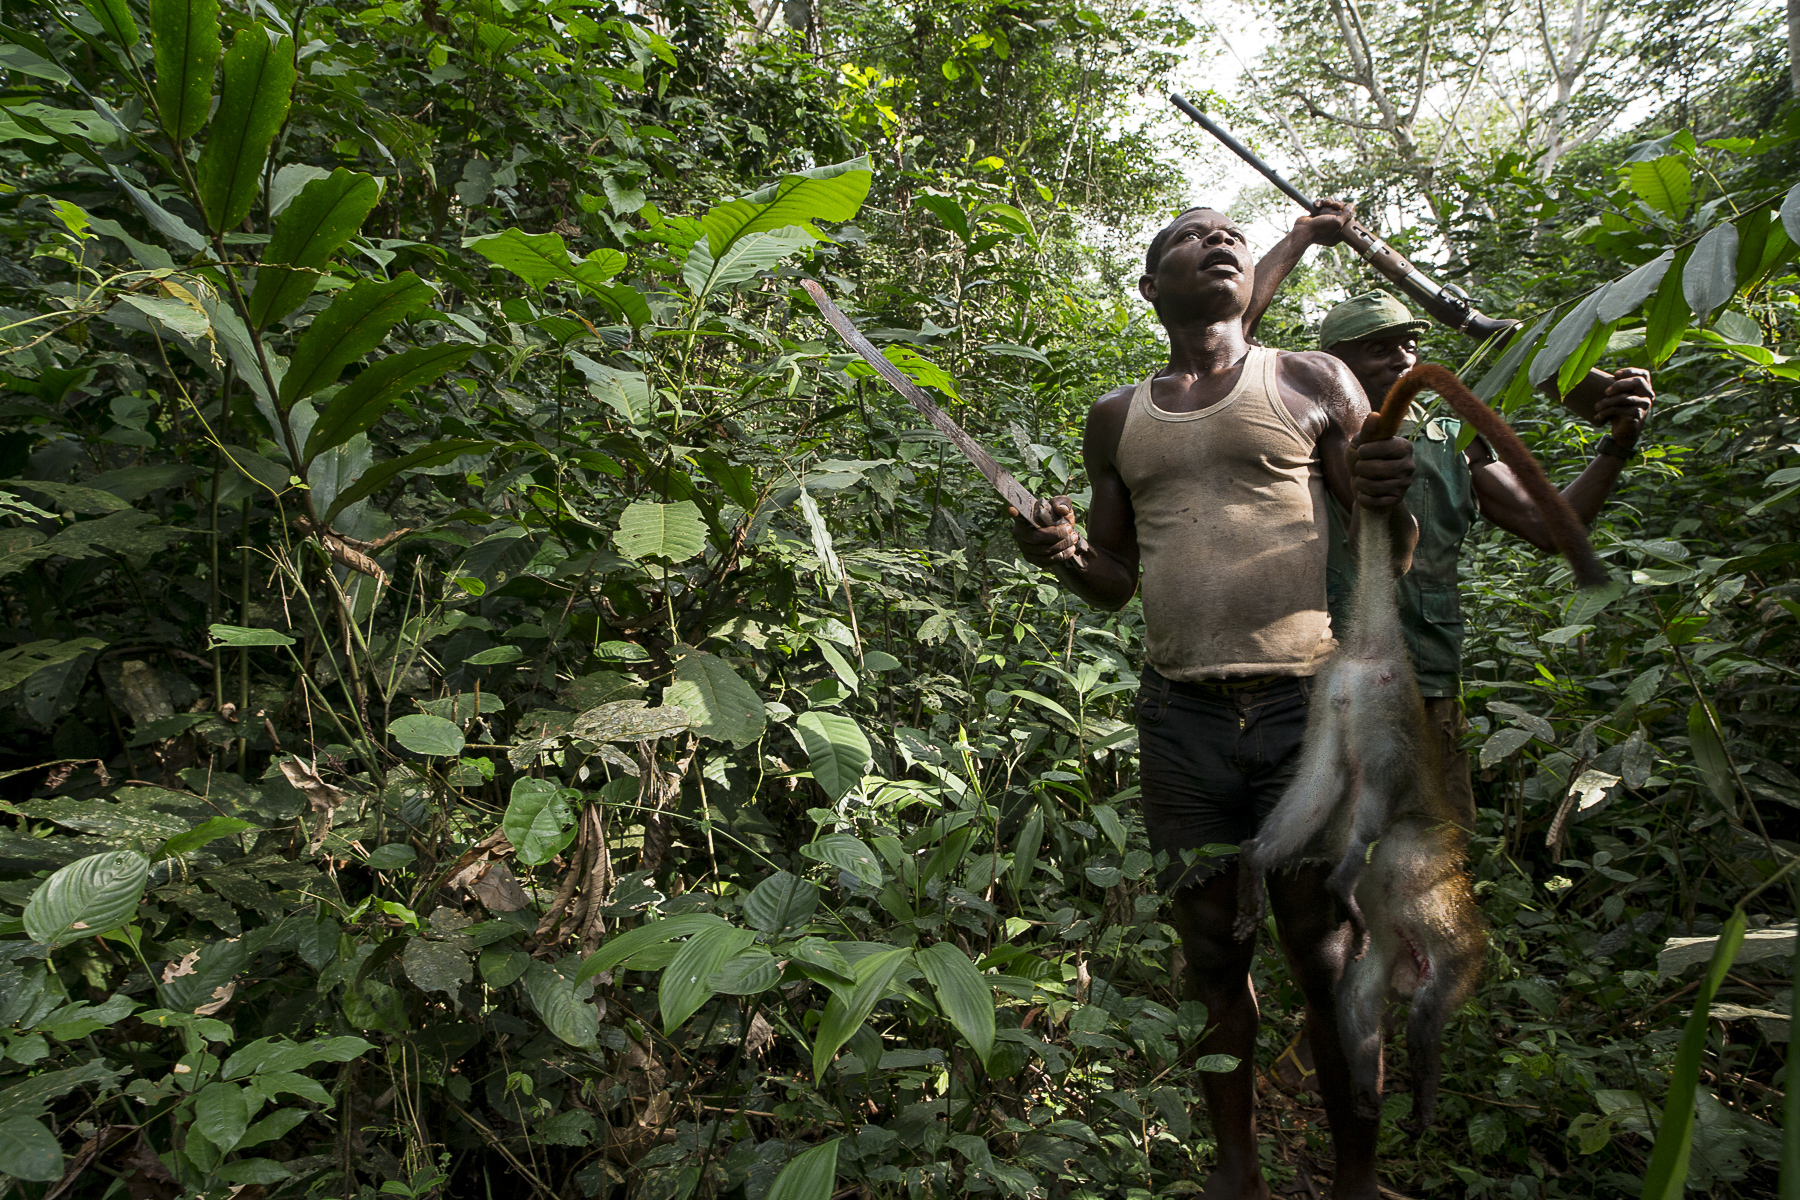 Cameroun, mai 2015. Des pygmés de la région de Koumala à 8 km du point zéro chasse le singe dans la forêt équotorial.Cameroon, May 2015. Pygmees hunting monckeys in Koumala region, 8 km from point zero in the equatorial forest.